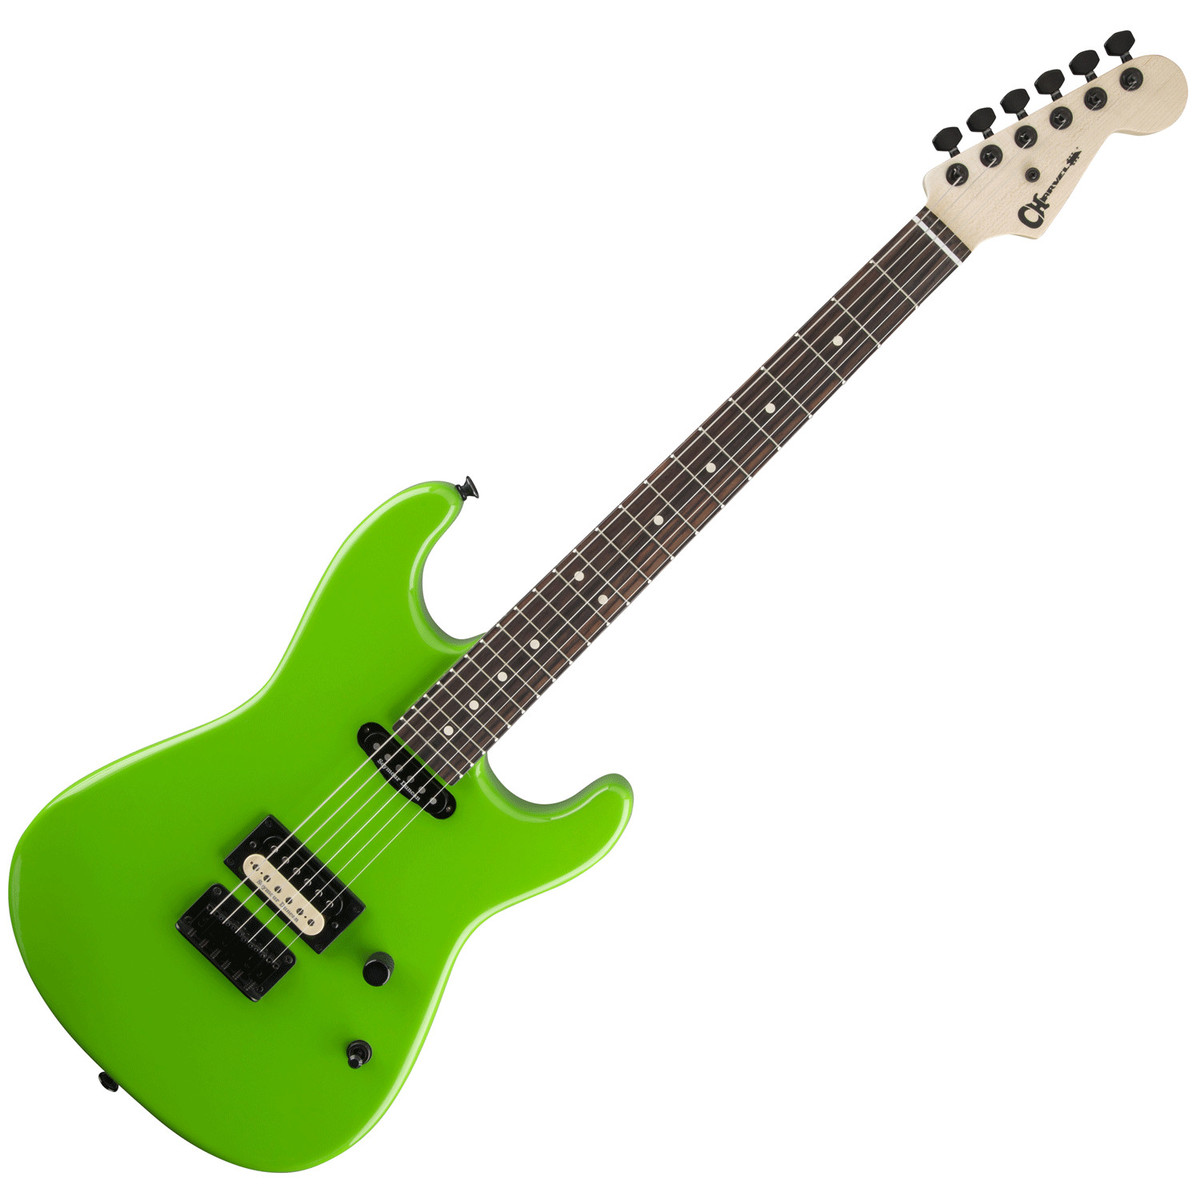 disc charvel san dimas style 1 hs ht electric guitar slime green at gear4music. Black Bedroom Furniture Sets. Home Design Ideas